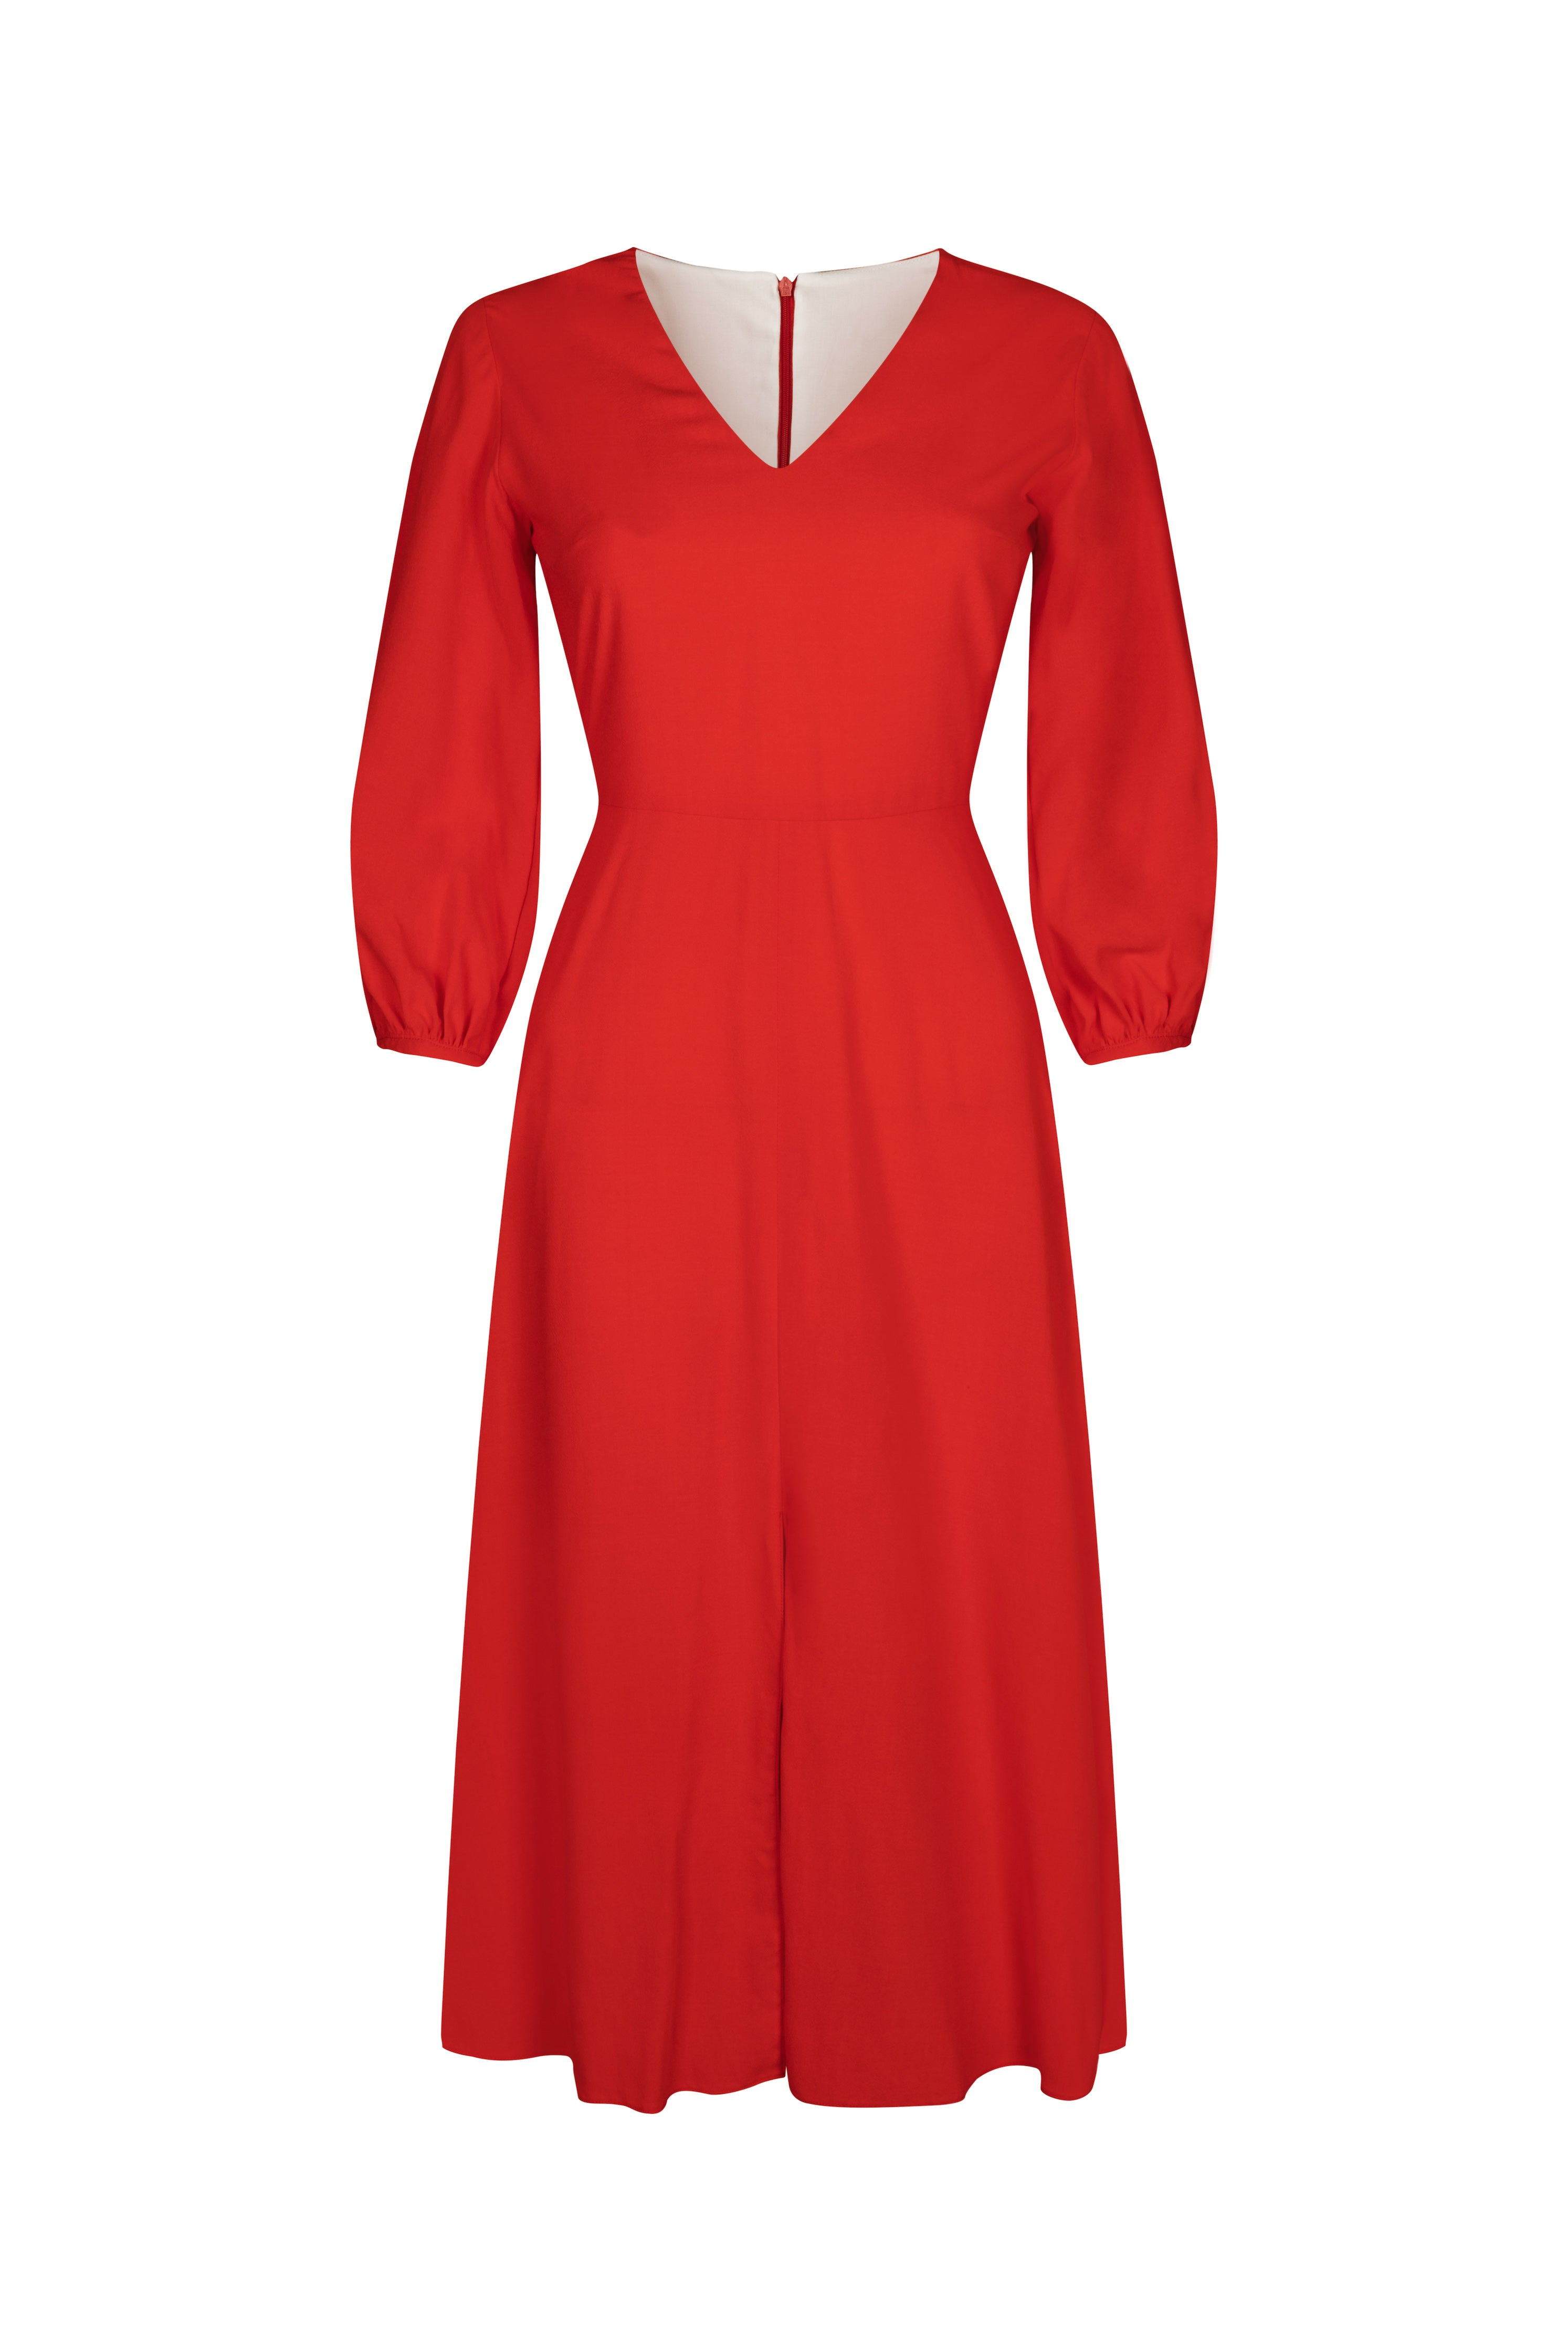 Hannah Dress in Scarlet